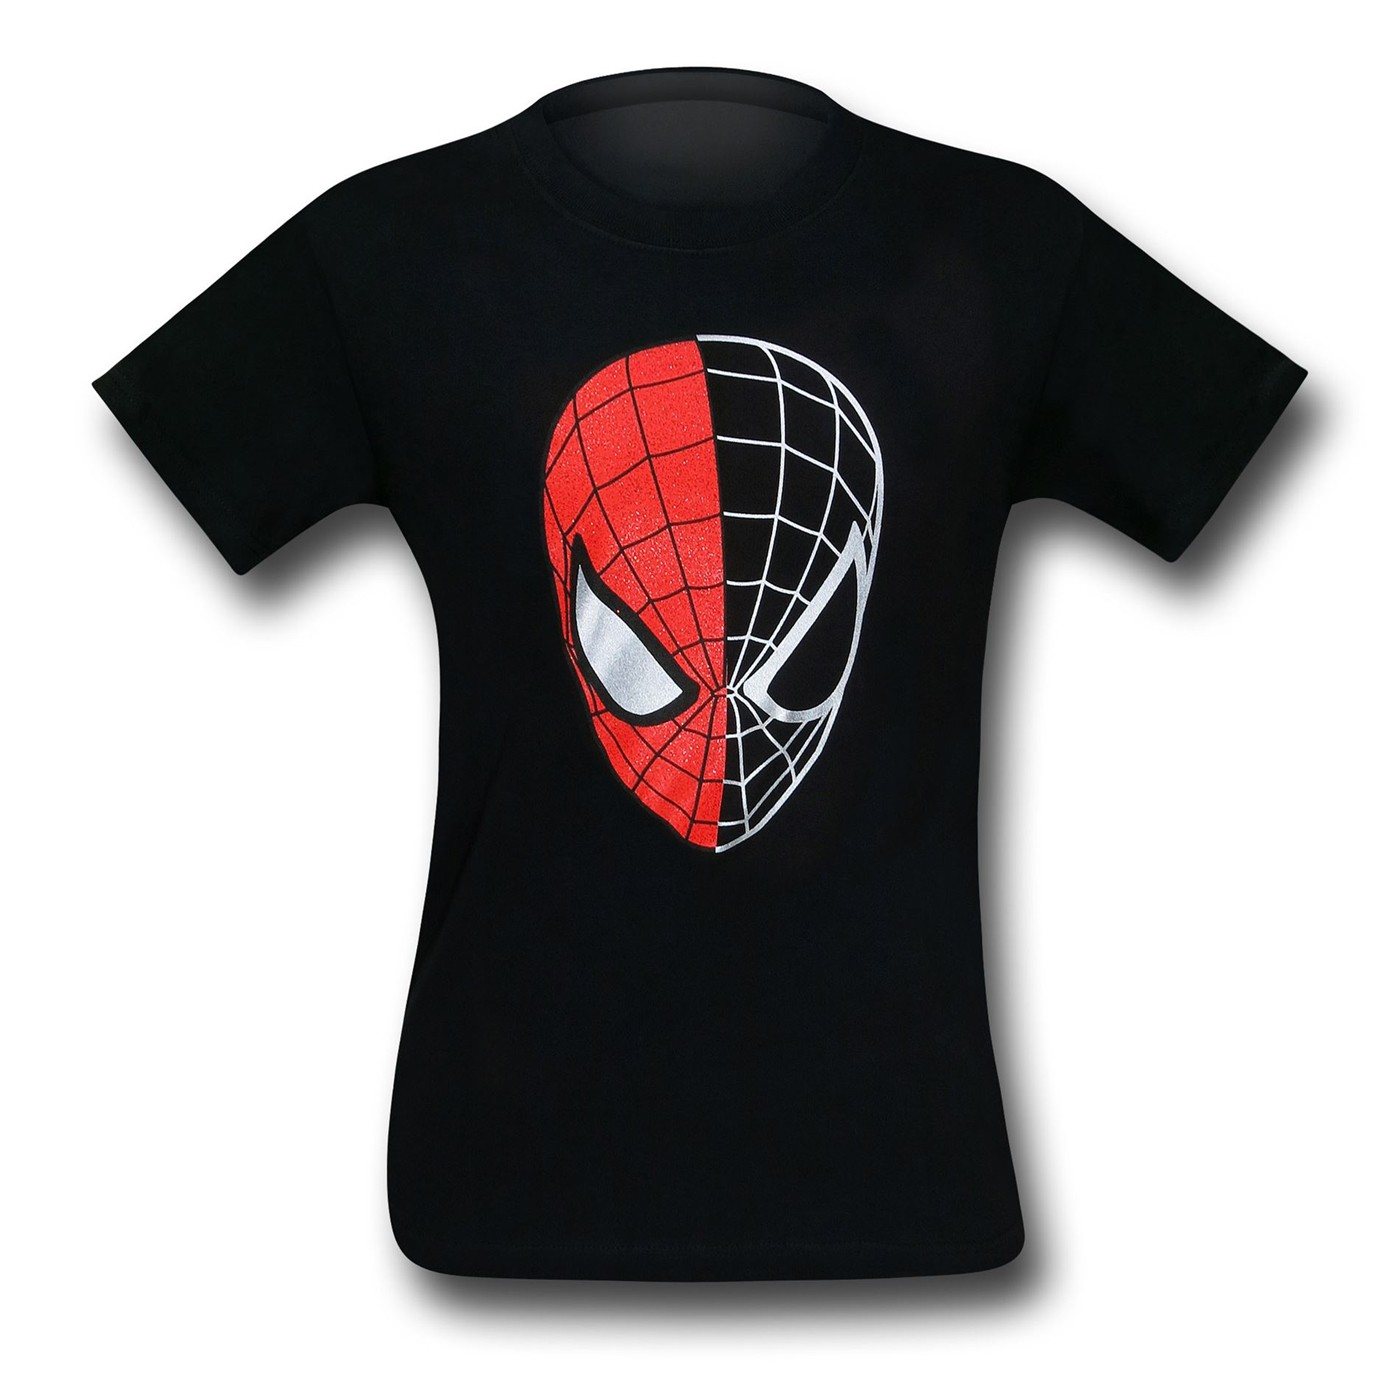 Spiderman Half-Gone Mask T-Shirt